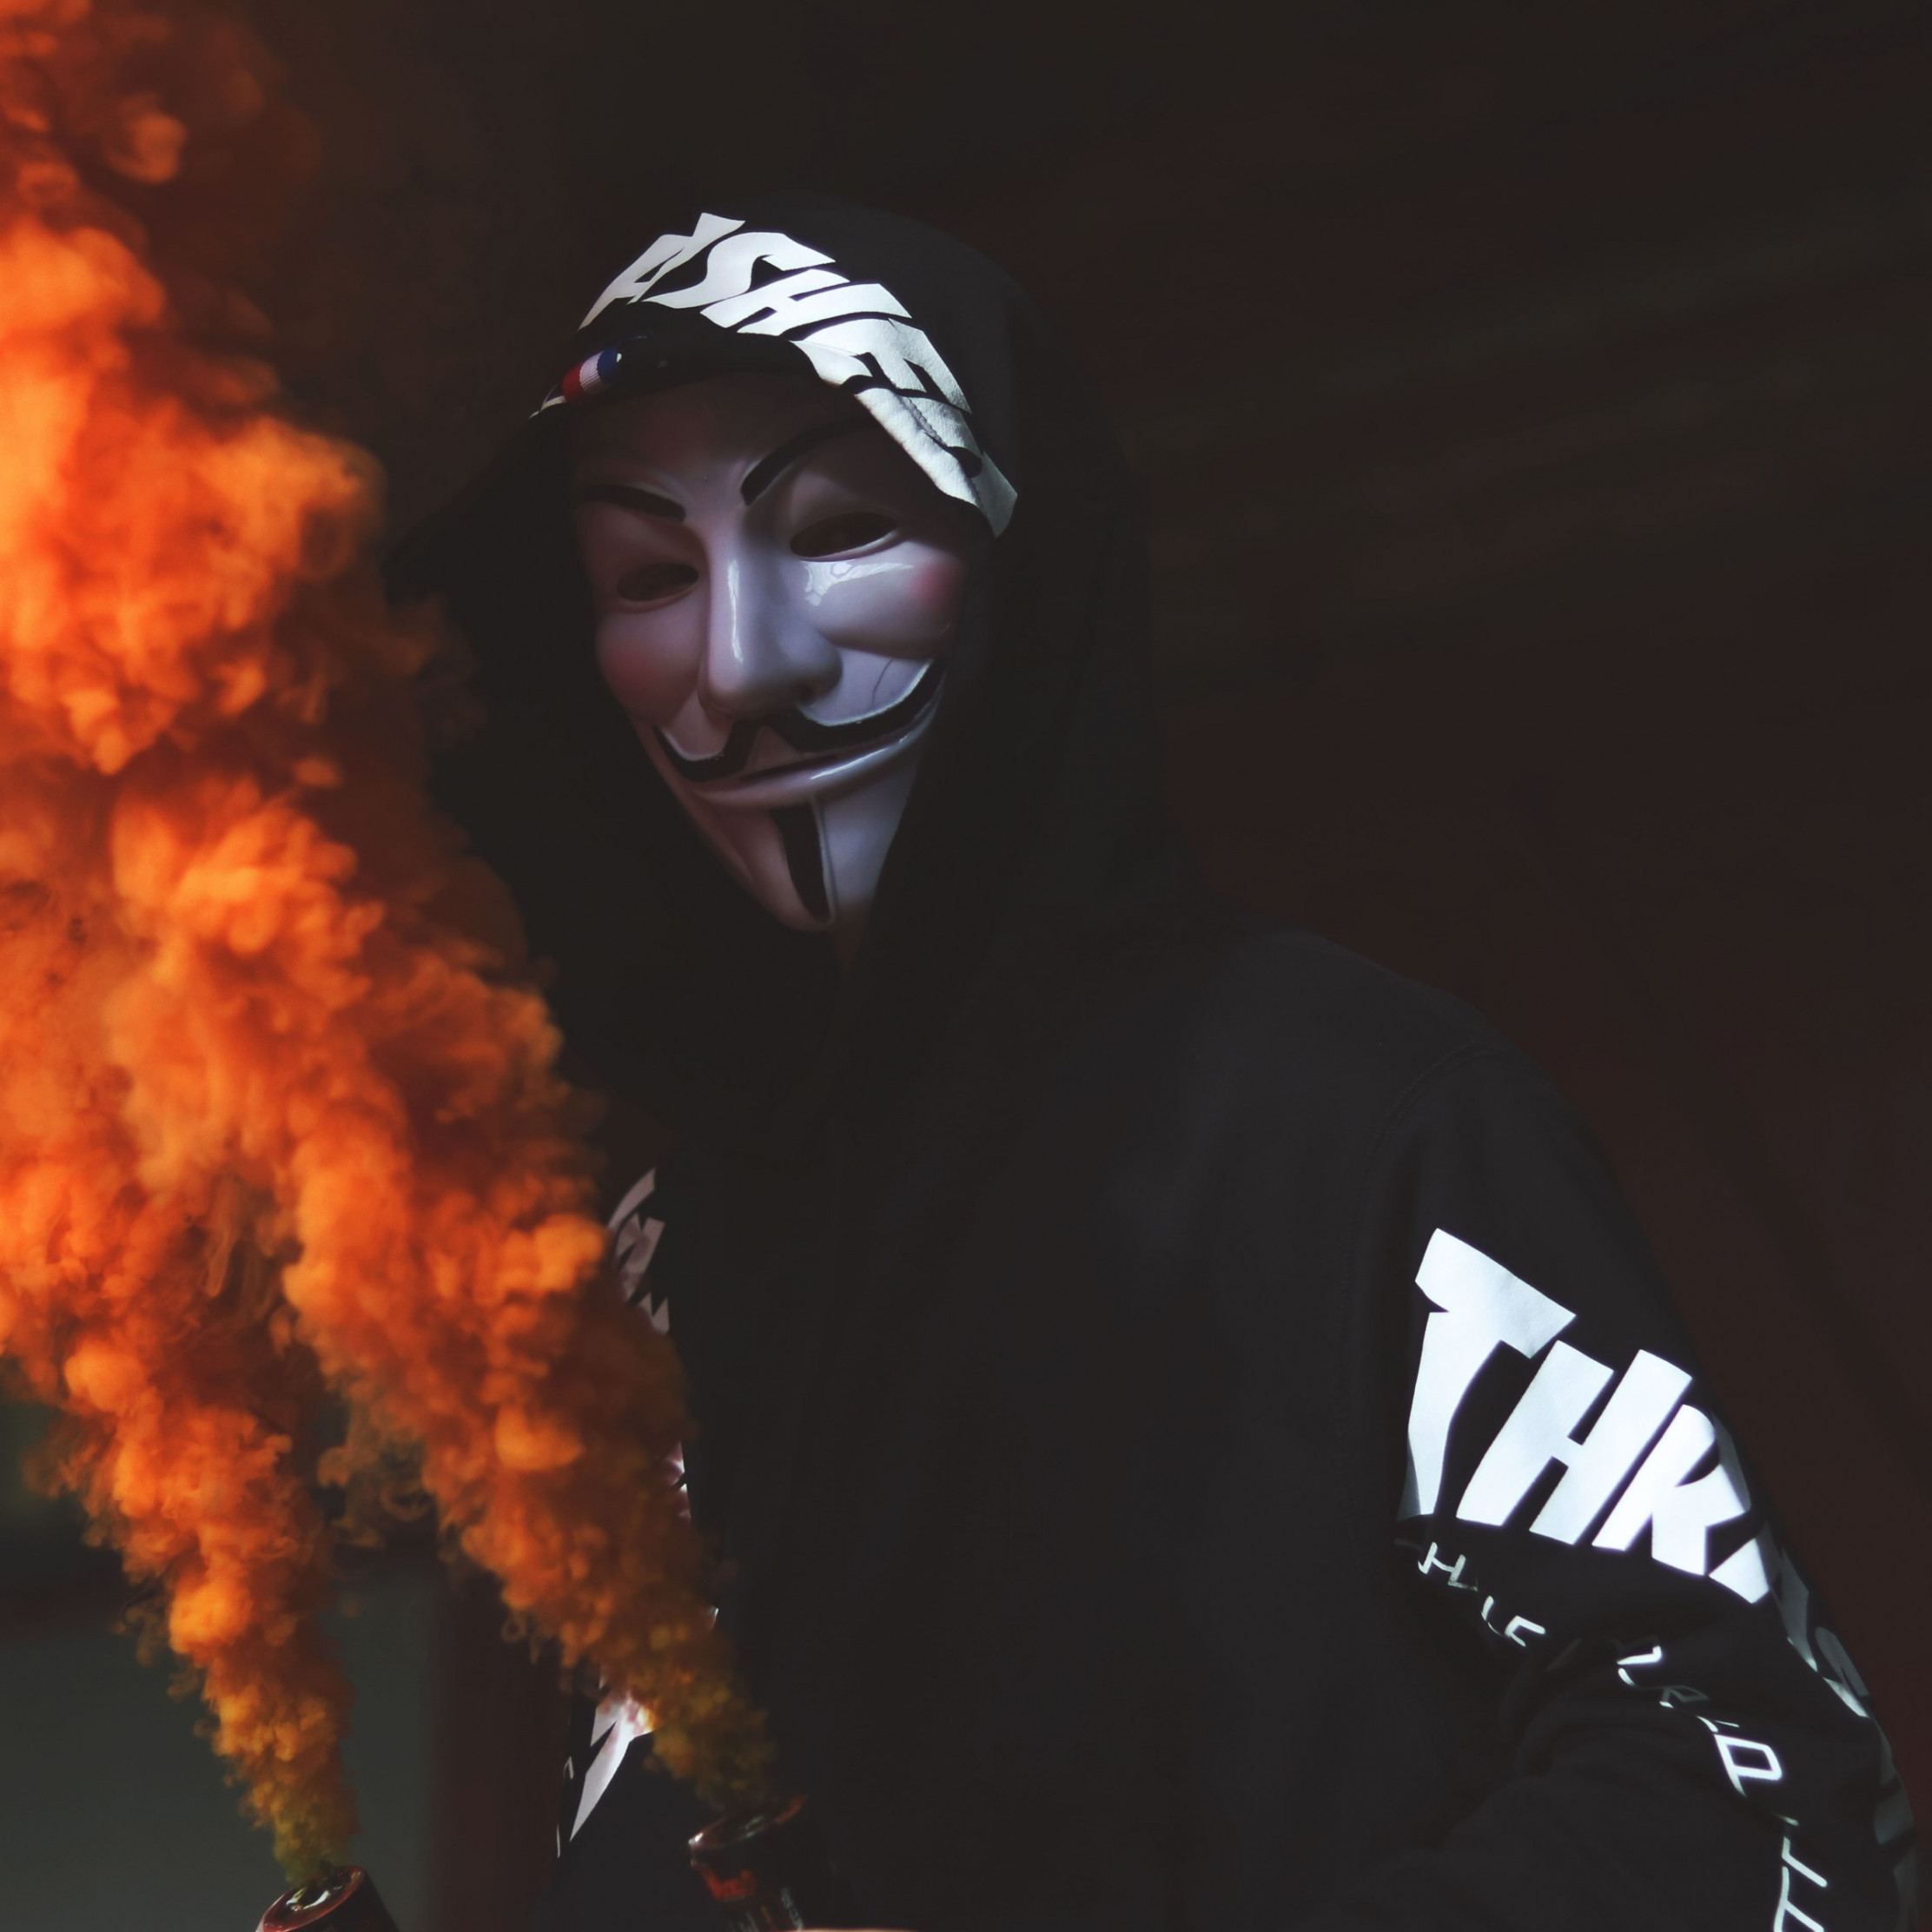 Anonymous mask and orange smoke | 2224x2224 wallpaper